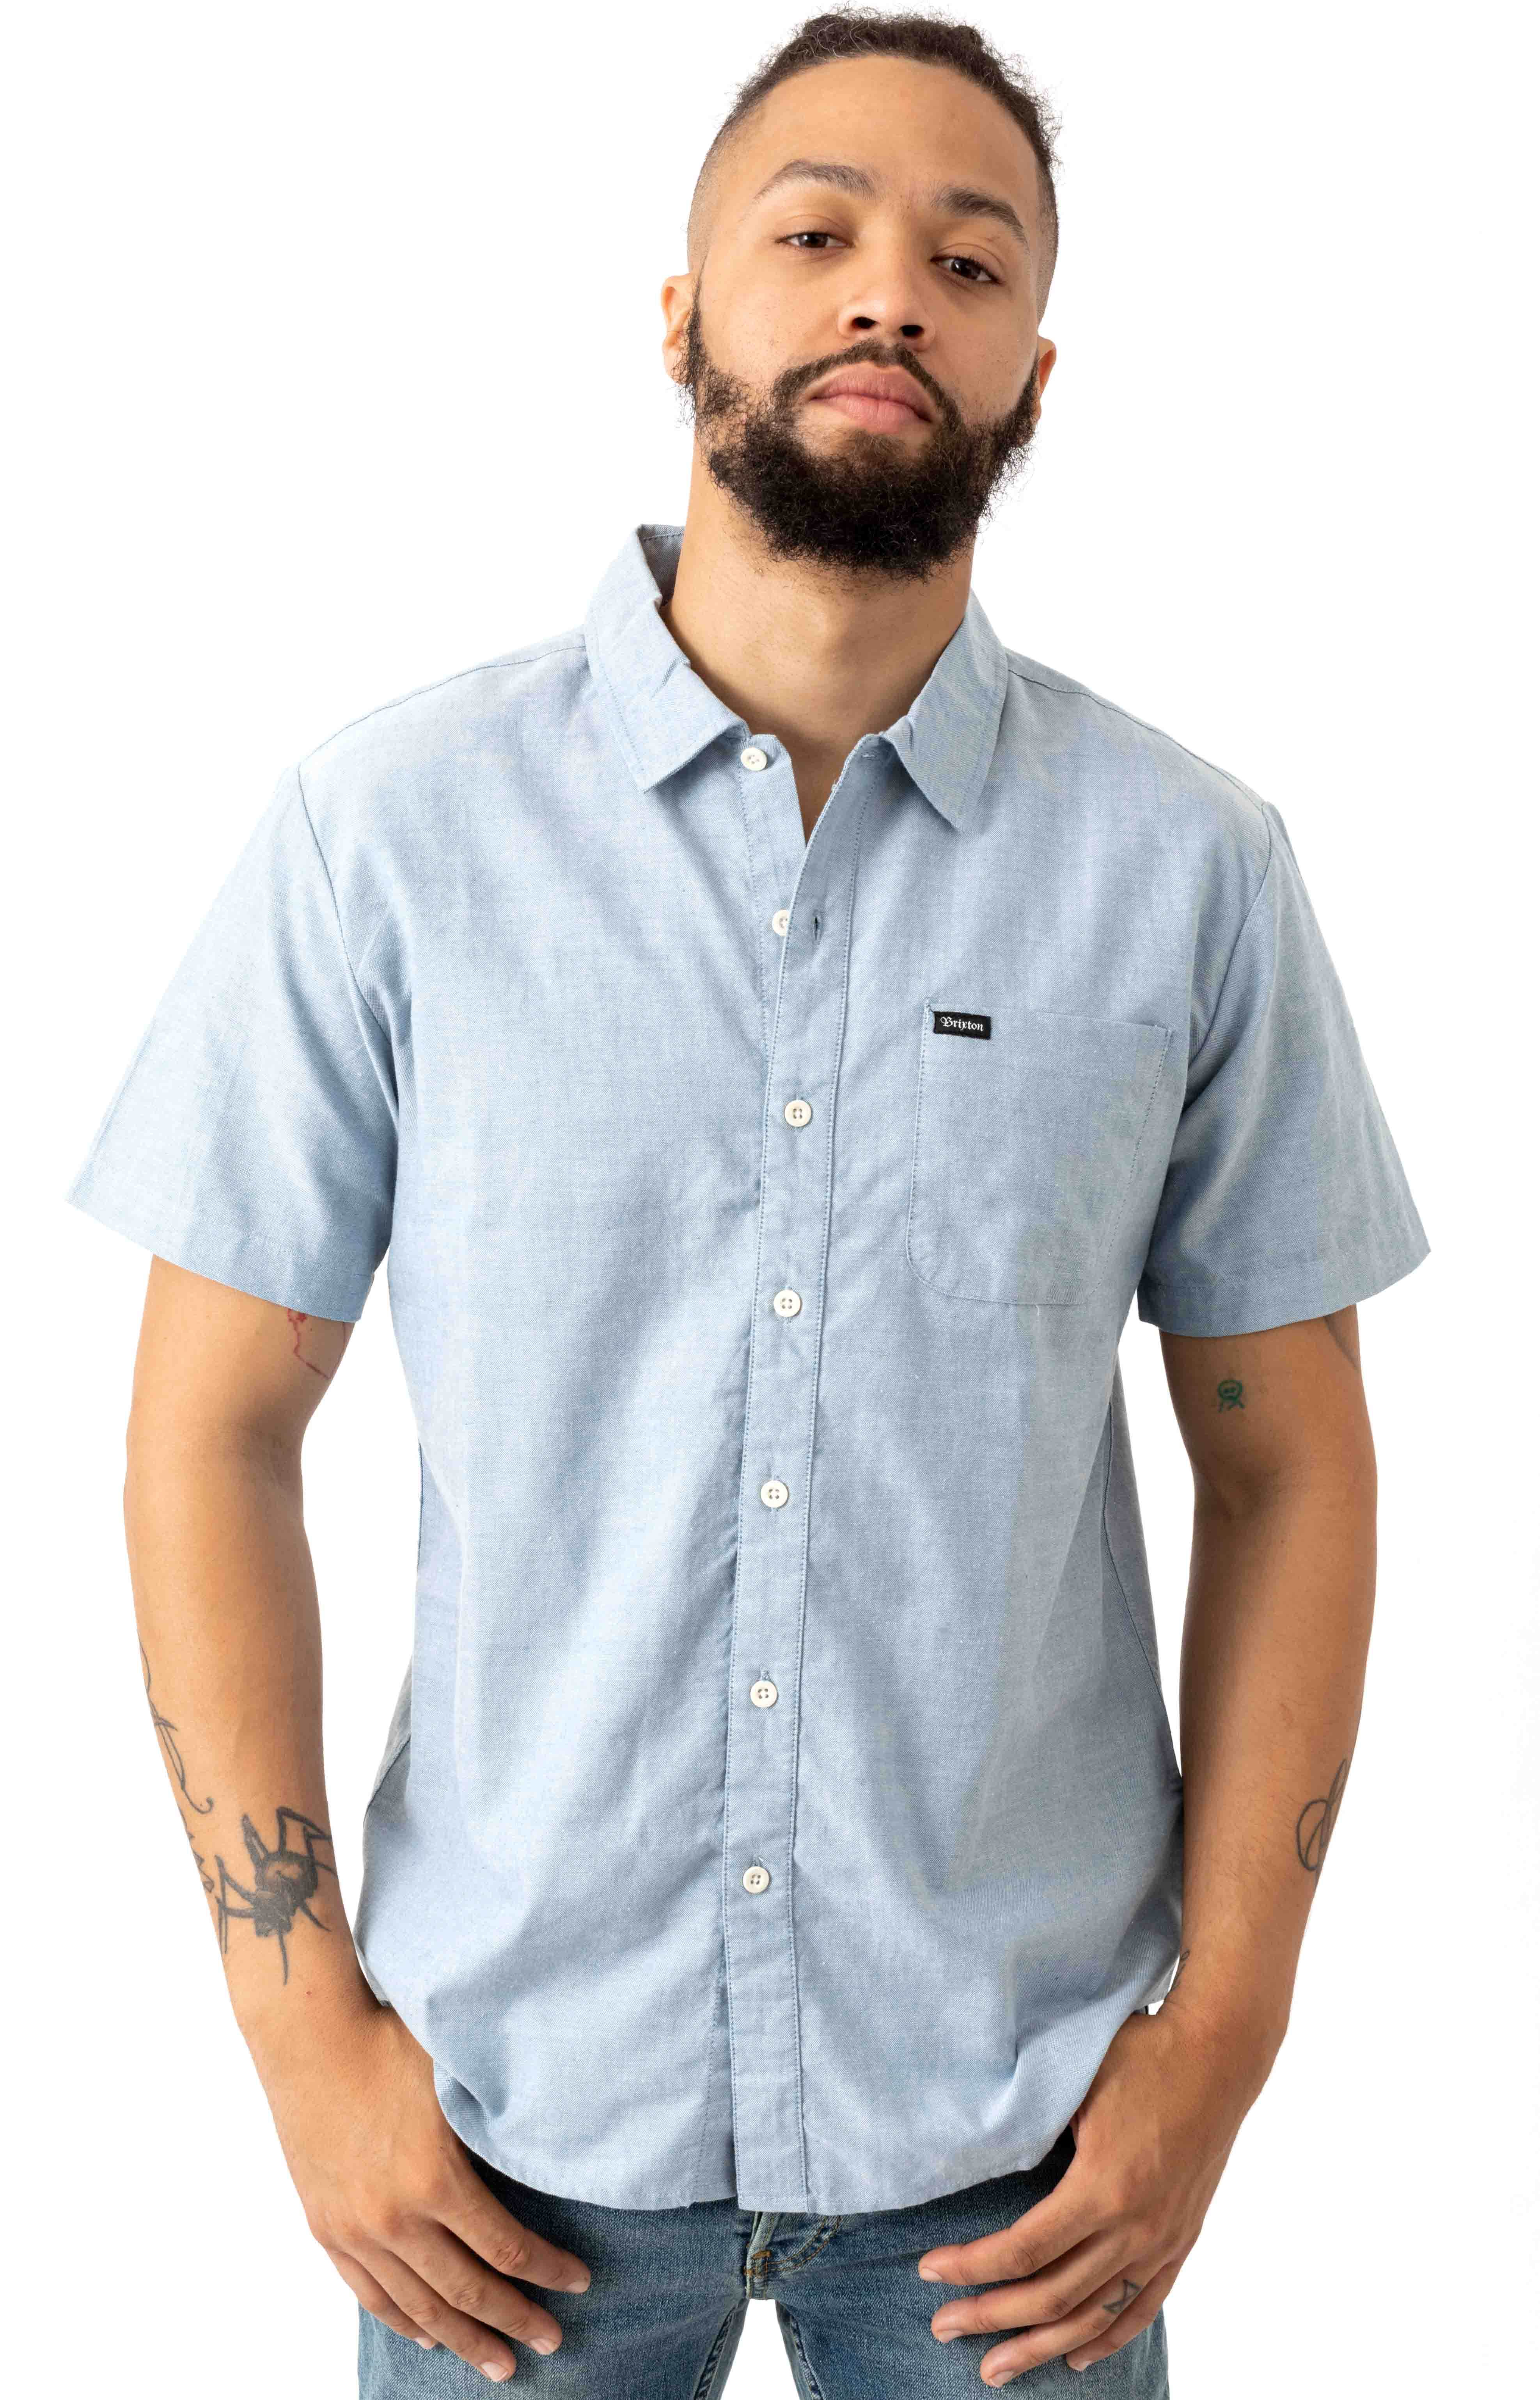 Charter Oxford S/S Button-Up Shirt - Light Blue Chambray